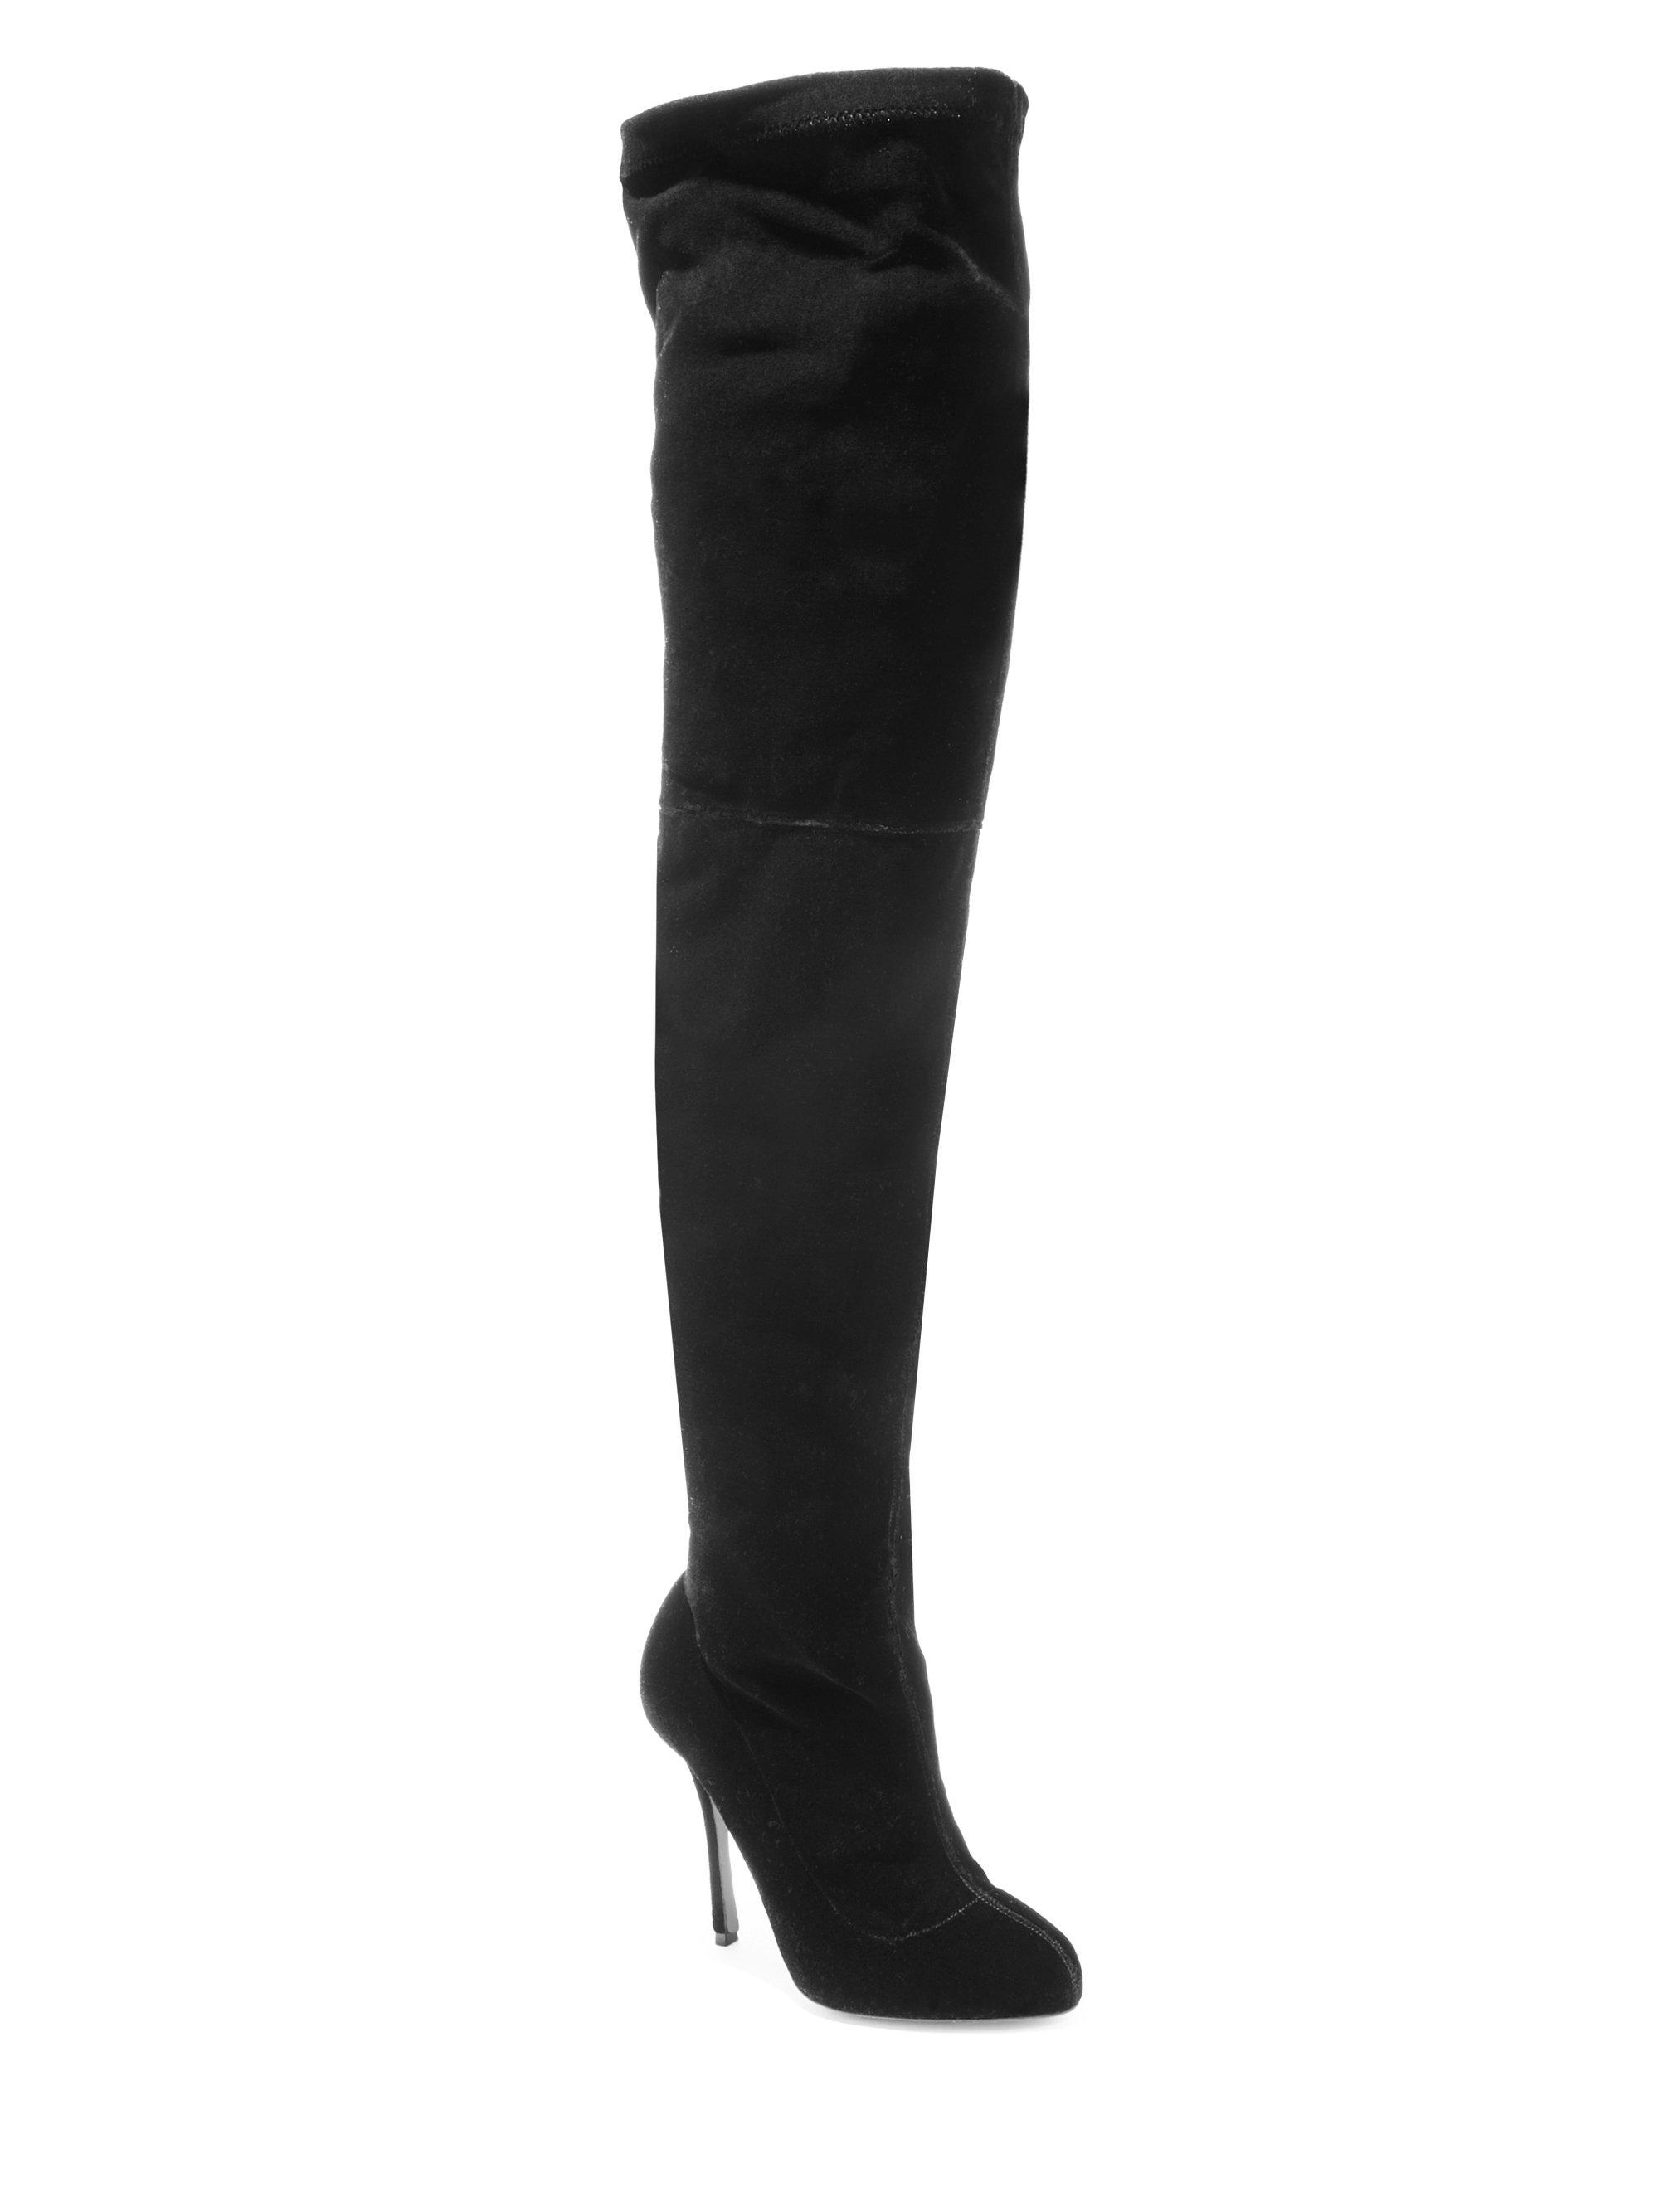 b043a1a3aa2 Christian Louboutin Classe 100 Velvet Thigh-high Boots in Black - Lyst